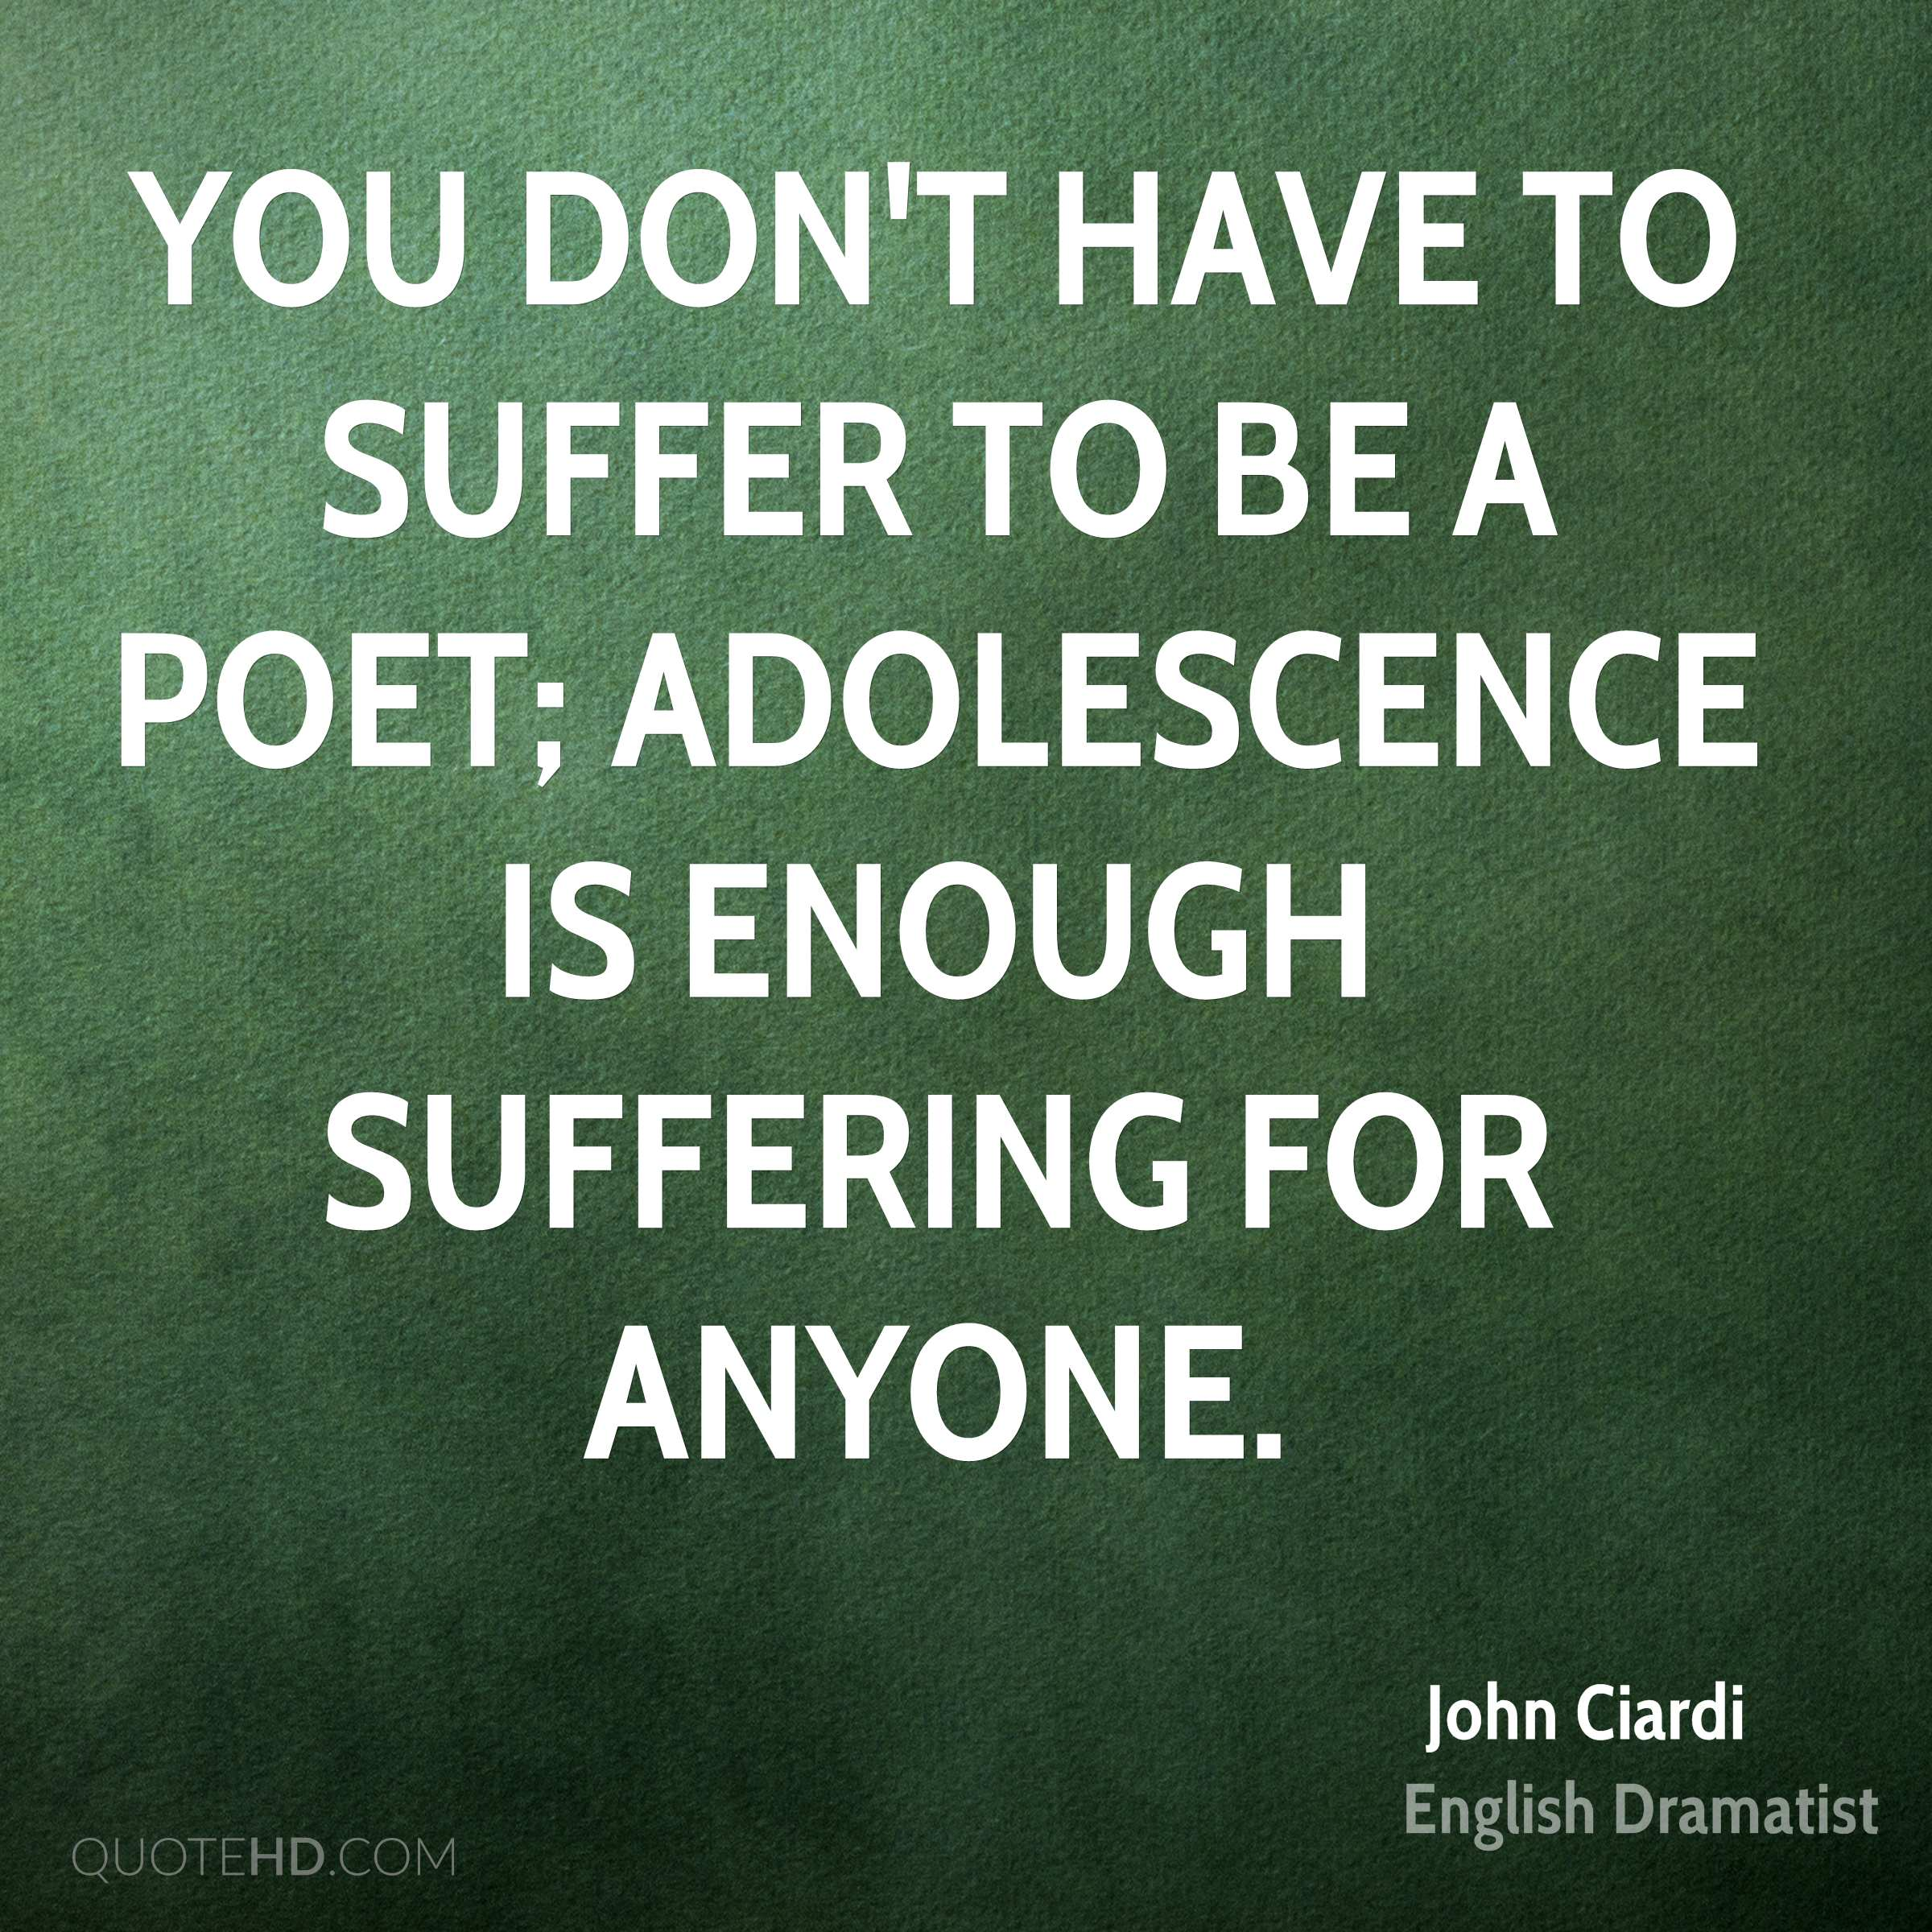 You don't have to suffer to be a poet; adolescence is enough suffering for anyone.